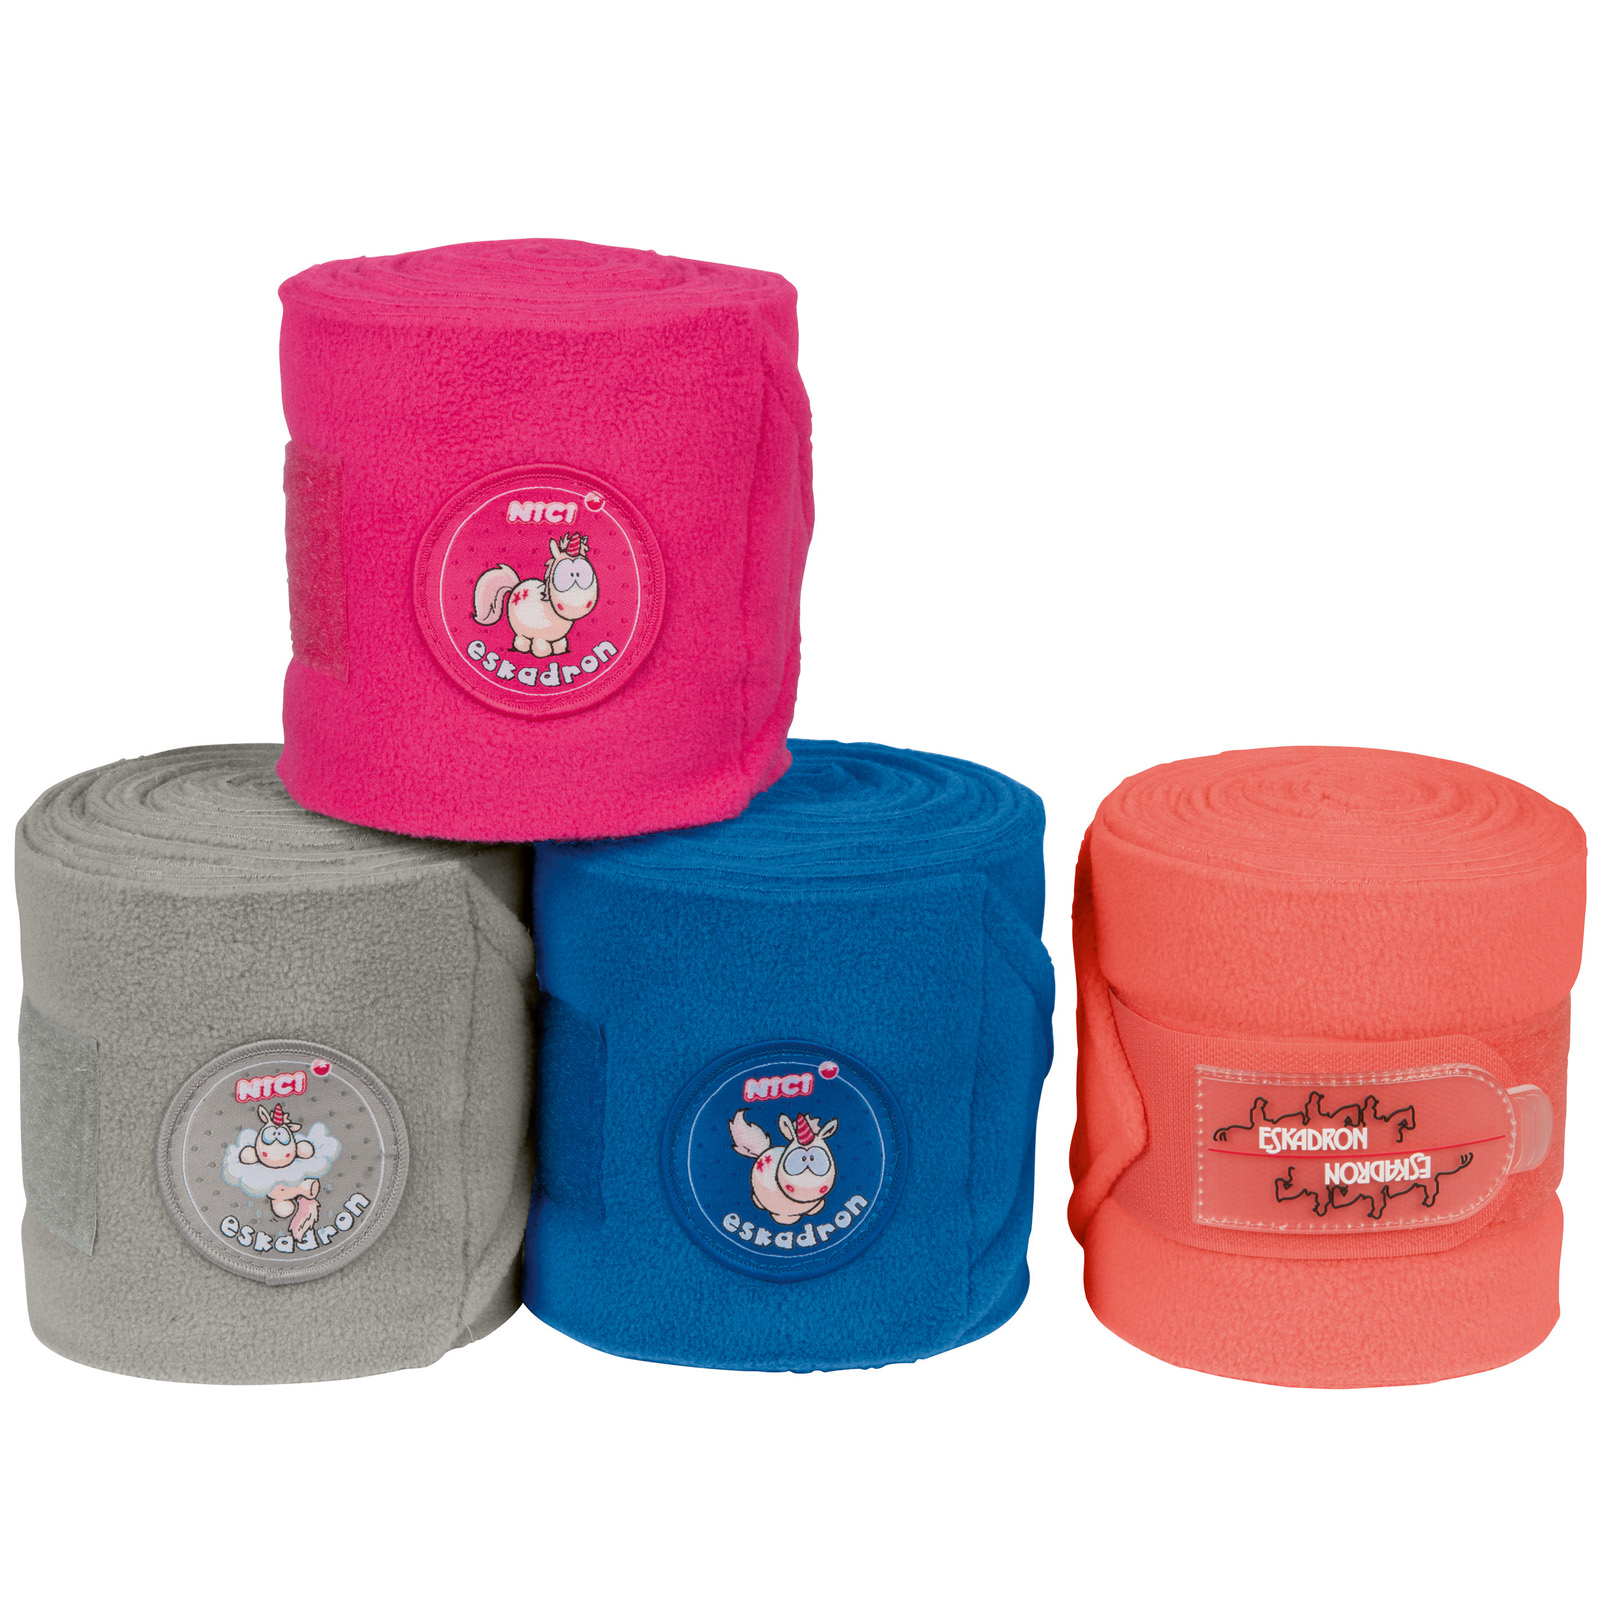 Eskadron Nici Fleecebandagen, Warmblut, peachy, blueberry, bubblepink, cloudgrey